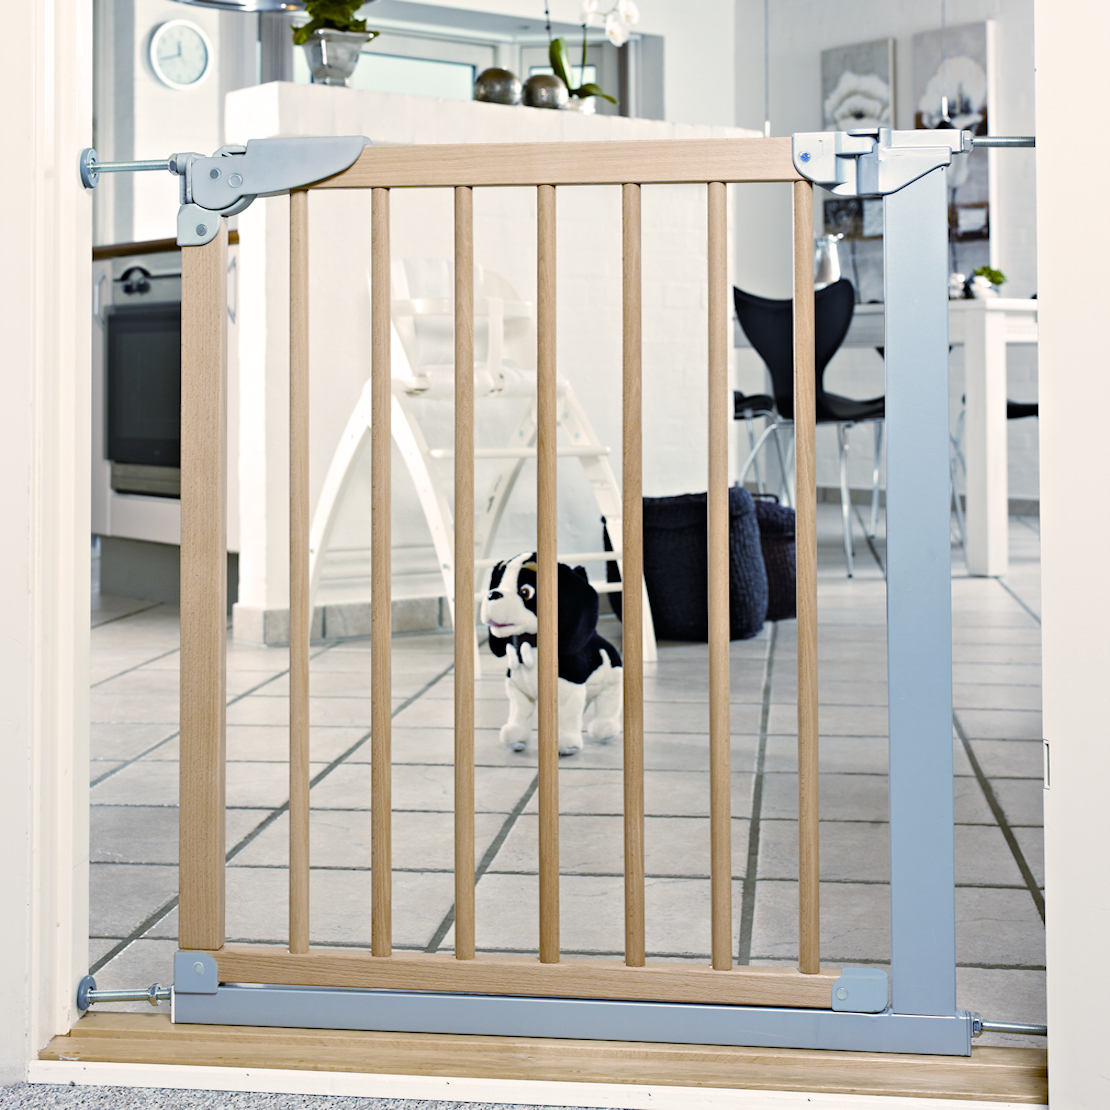 Babydan Designer Pressure Indicator Safety Gate